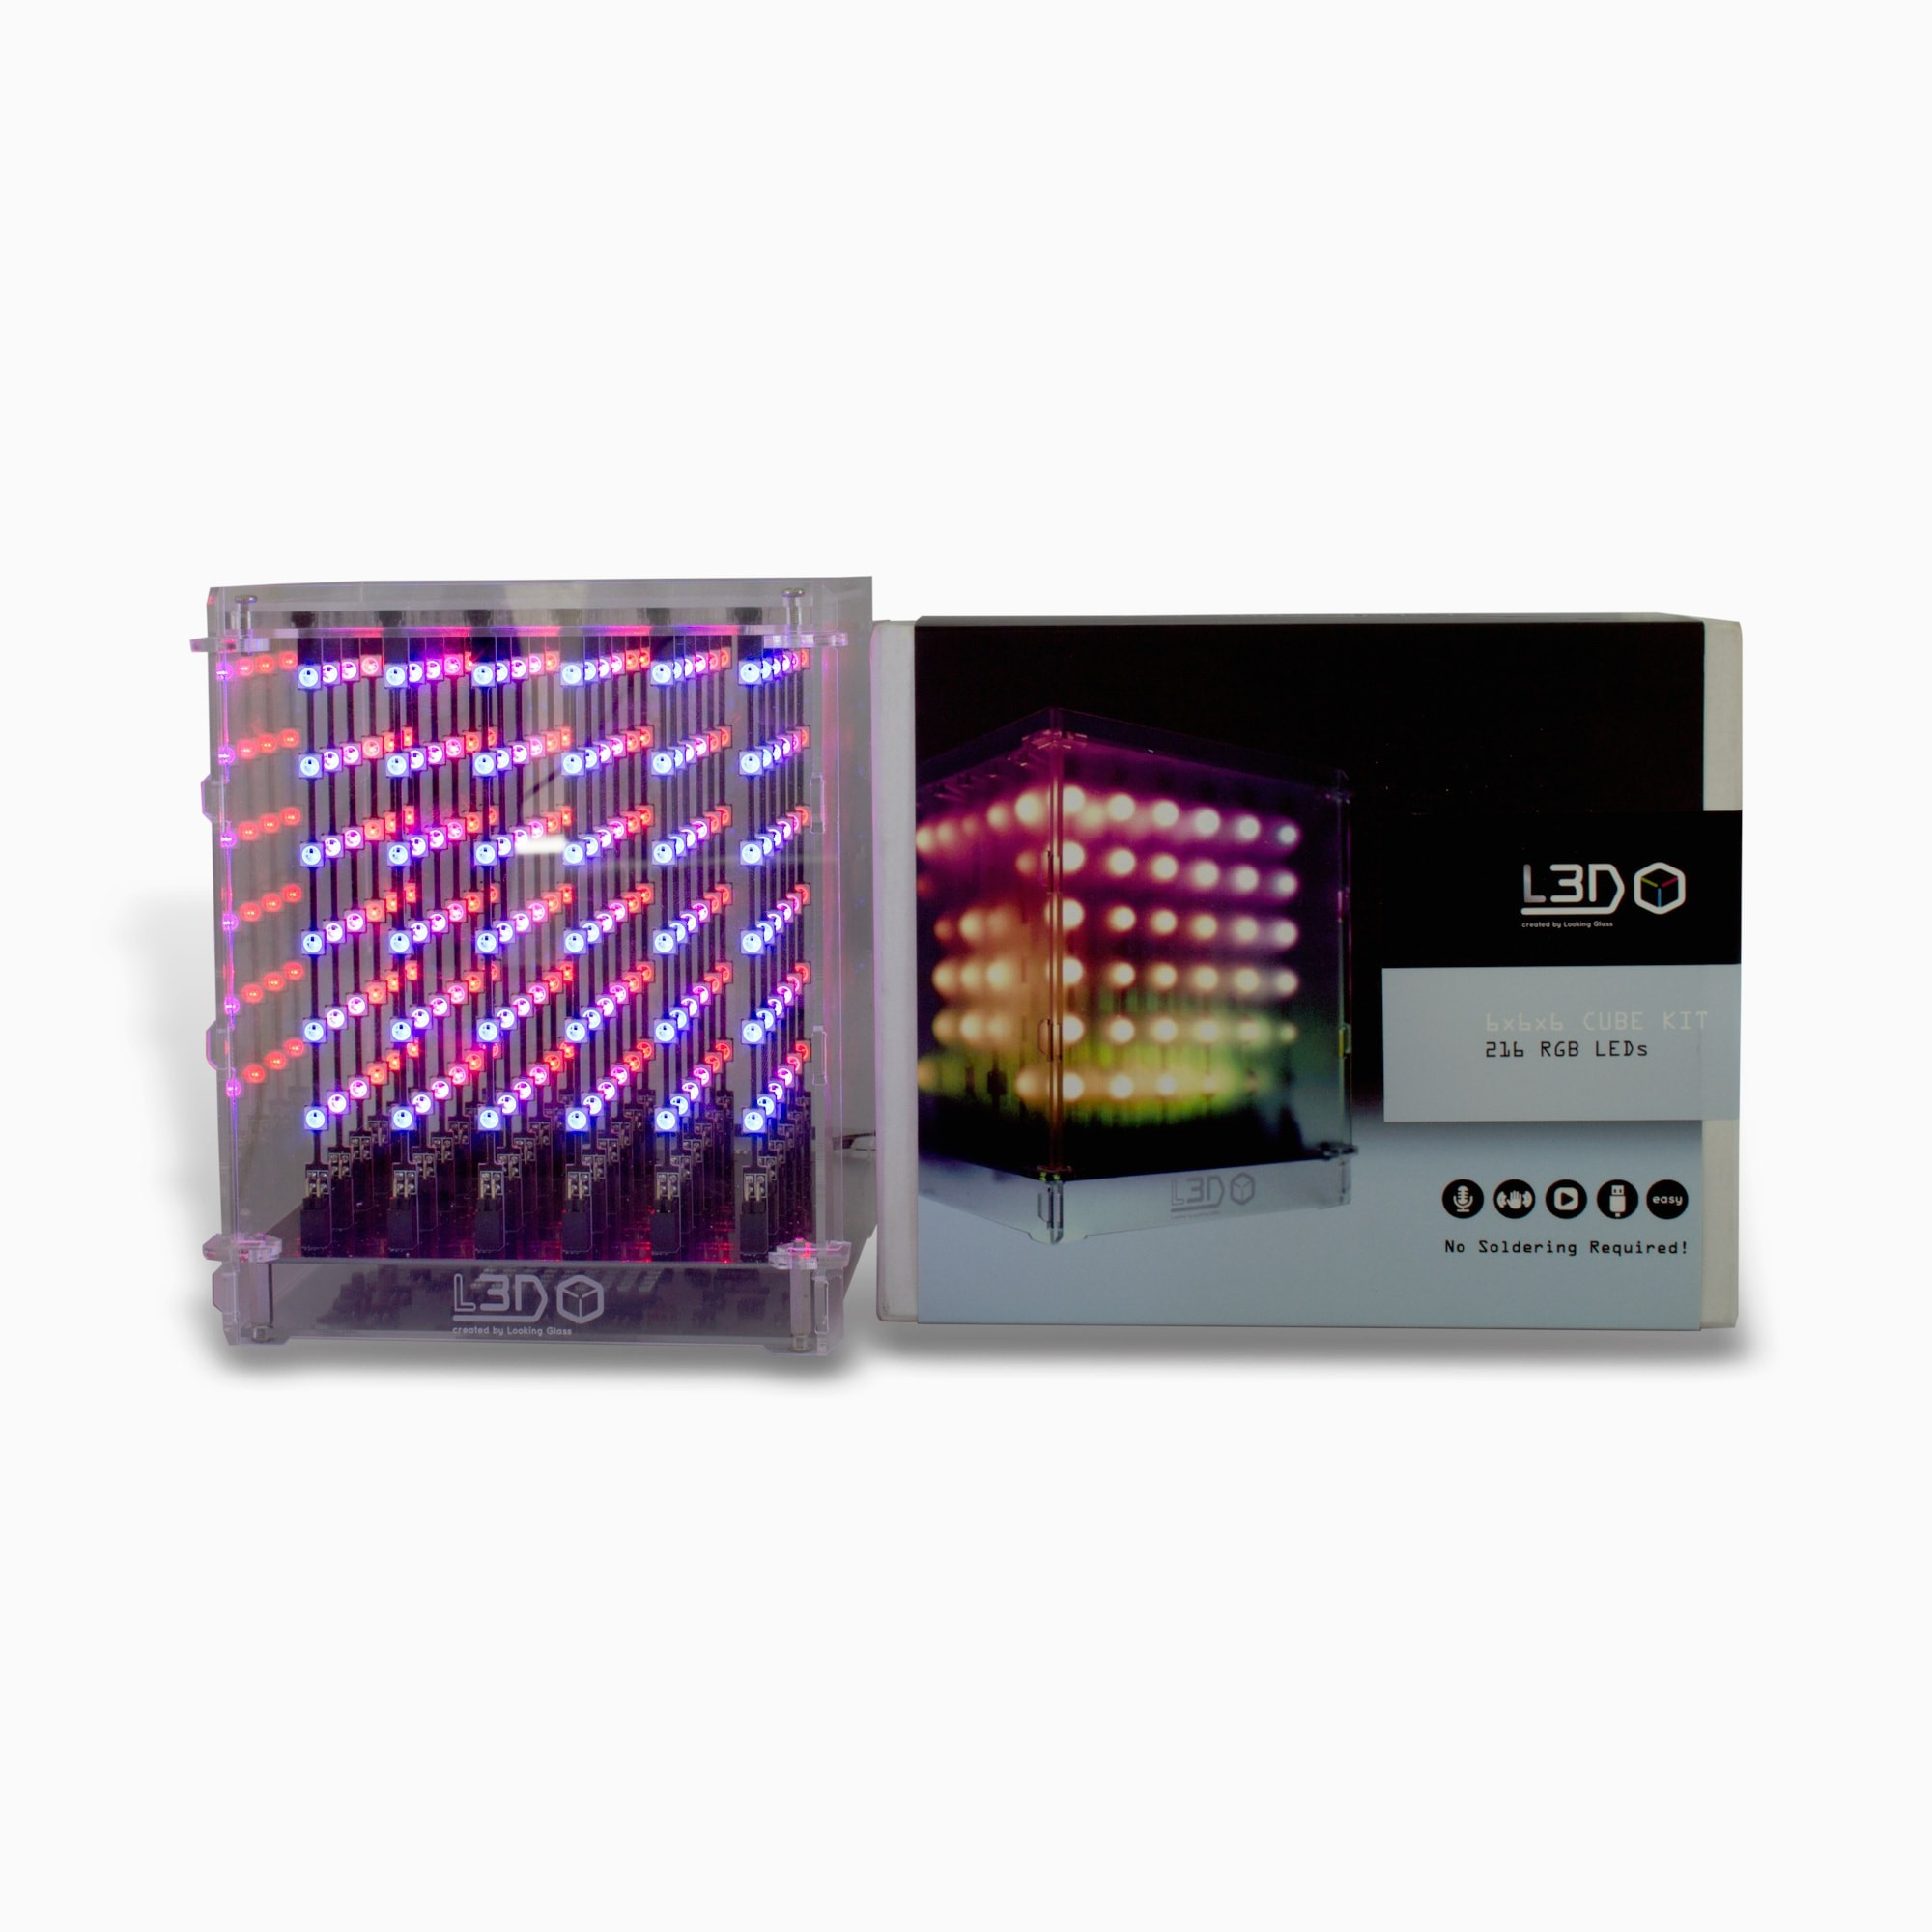 10025939-l3d-cube-lit-with-box